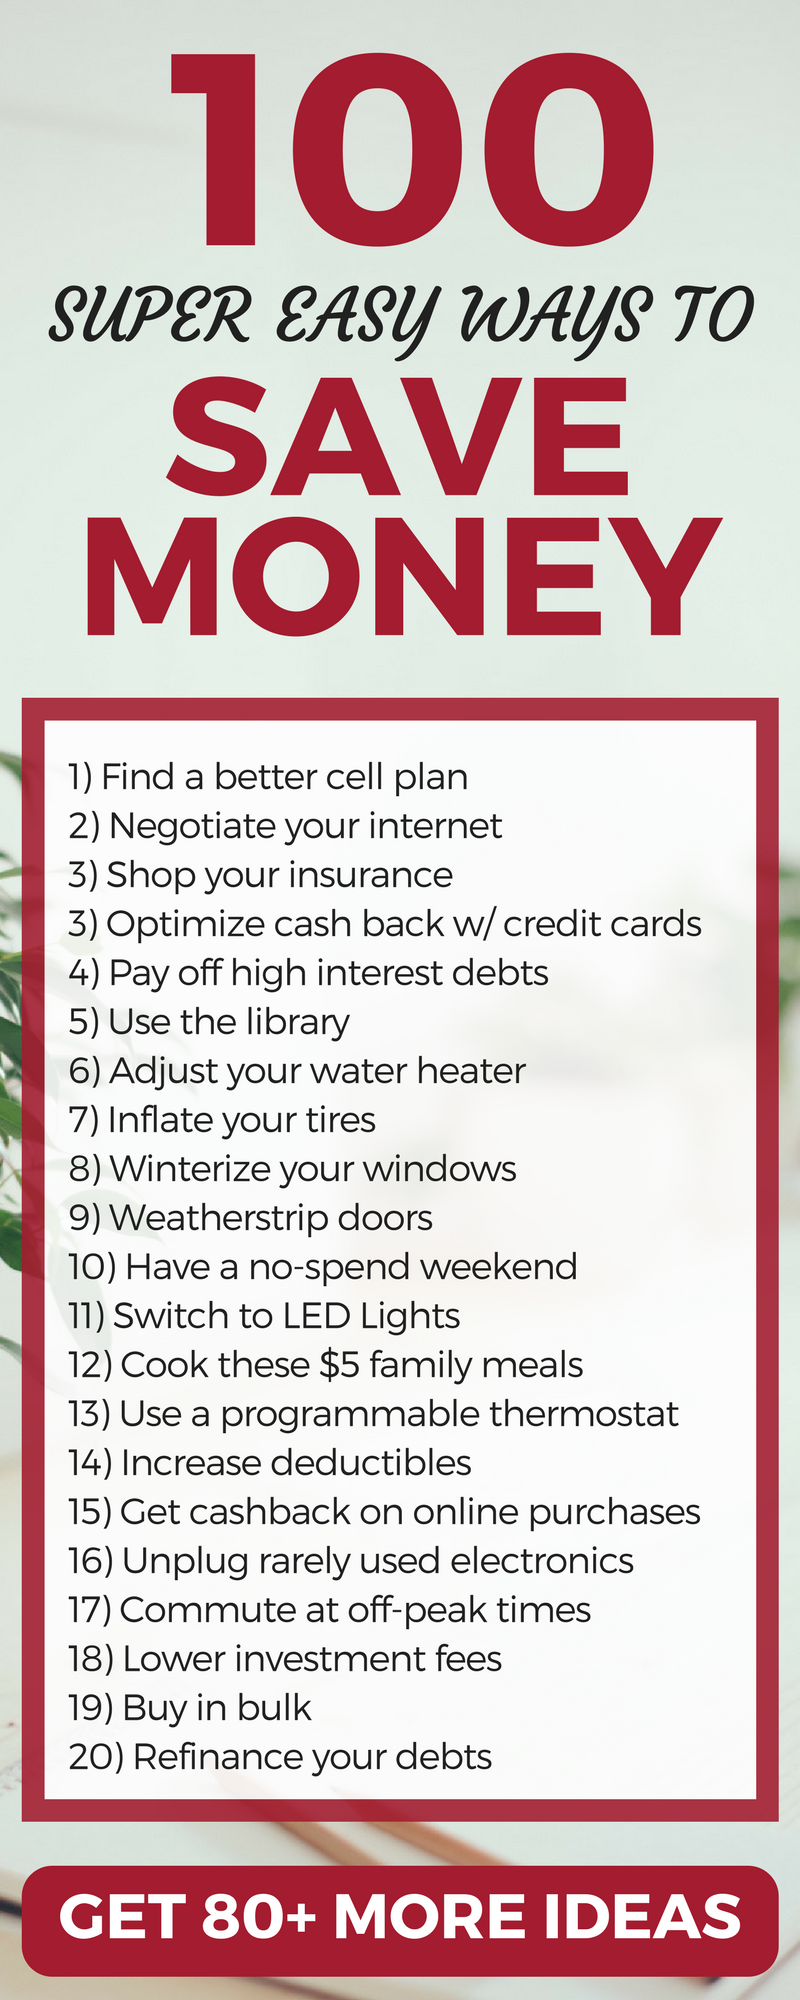 Wow! 100+ Ideas to save money and live frugally. Lots of great tips and strategies here. Money saving ideas | saving money | How to coupon | couponing | money saving tricks | budget #coupons #Deals #save #shopping #money #Cheap #finance #frugalliving #finances #budget